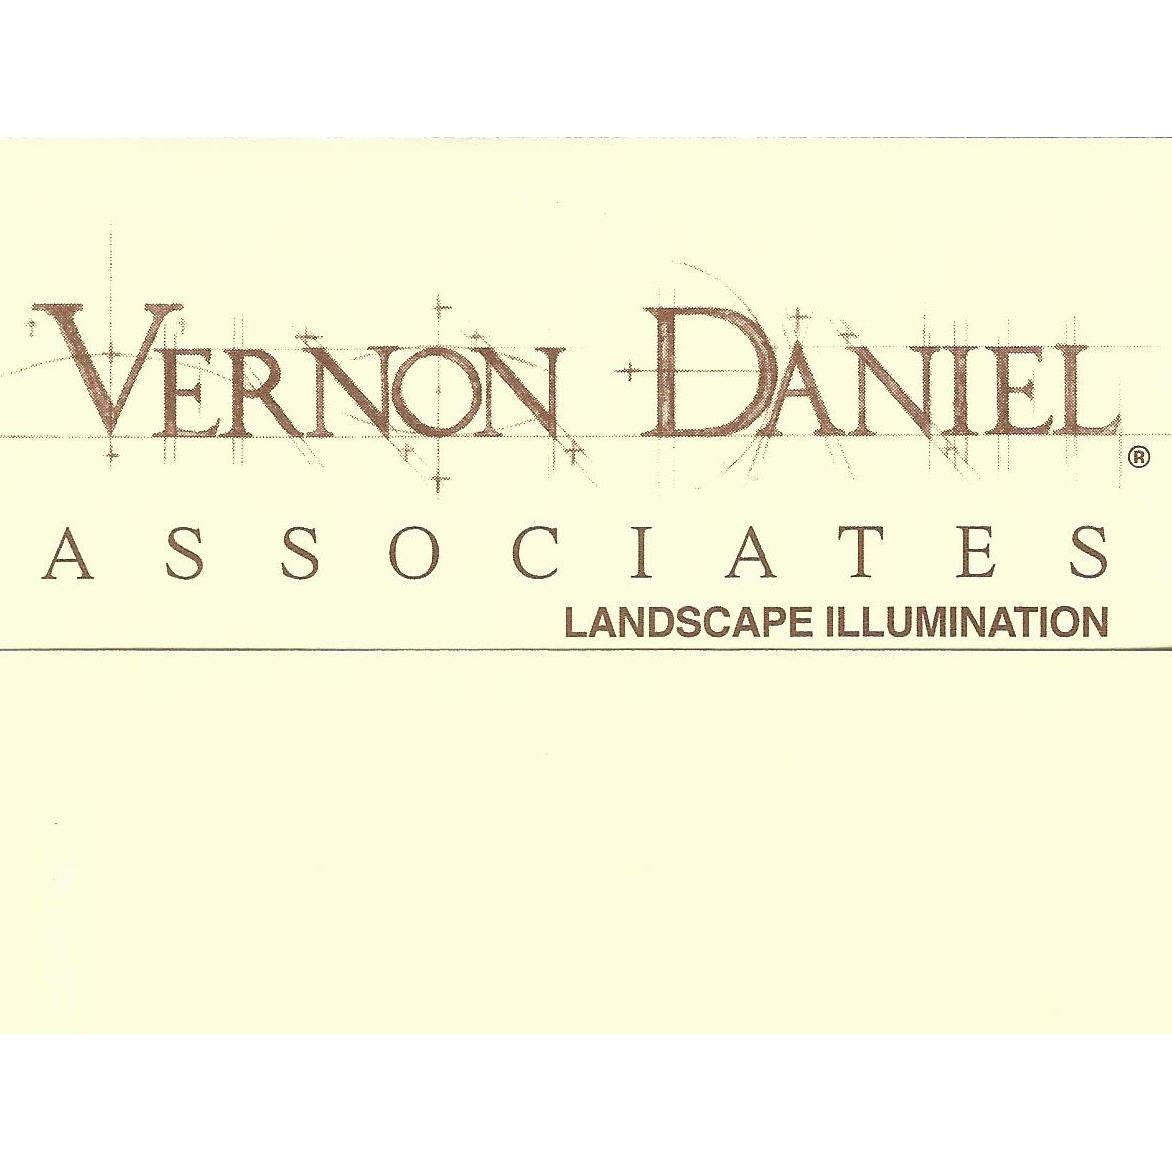 Vernon Daniel Associates Landscape Illumination - West Palm Beach, FL 33416 - (800)586-0246 | ShowMeLocal.com